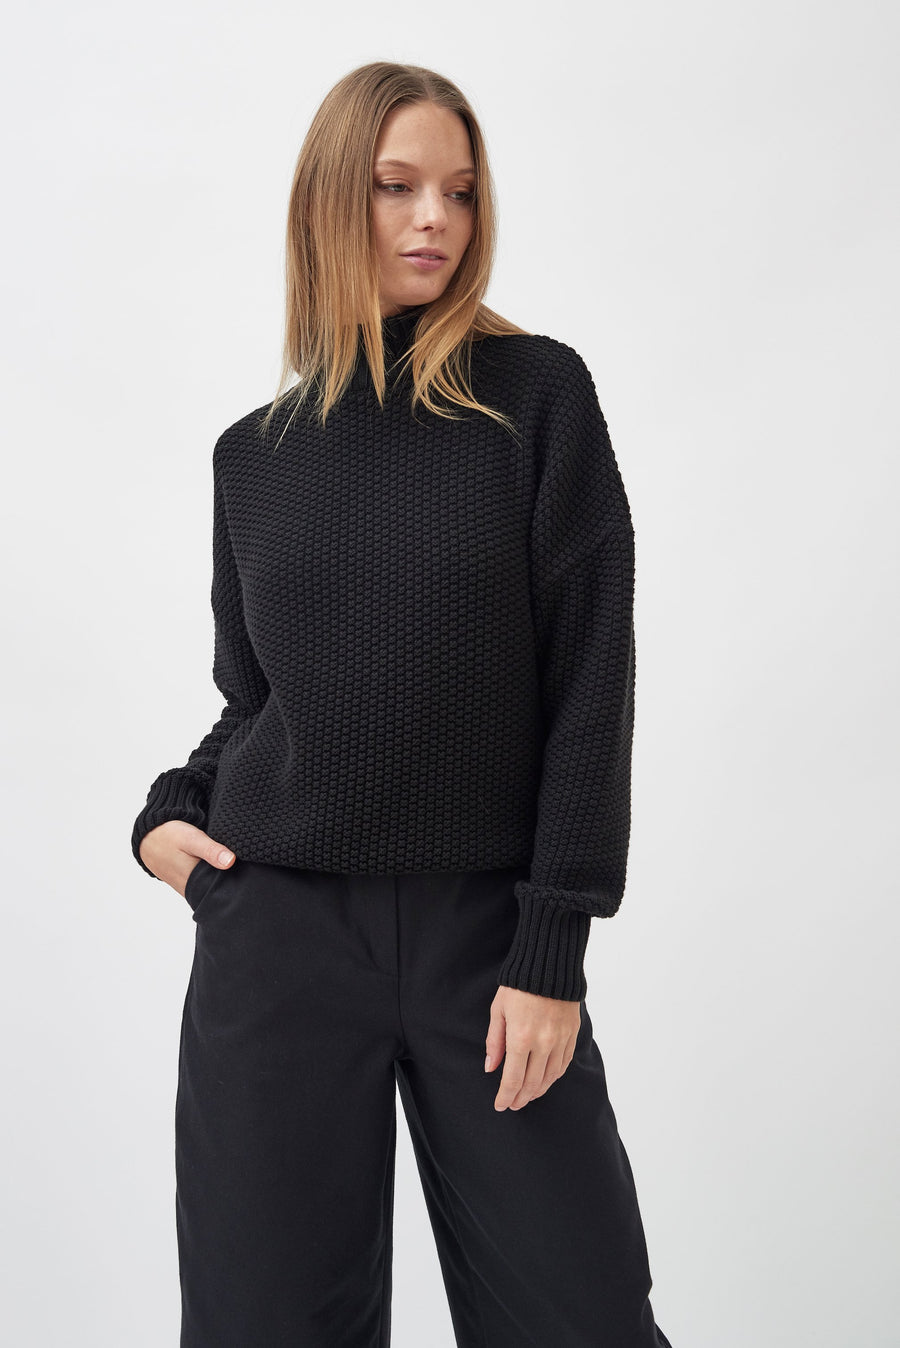 treen-mila-vert-knitted-rice-cubes-pullover-black